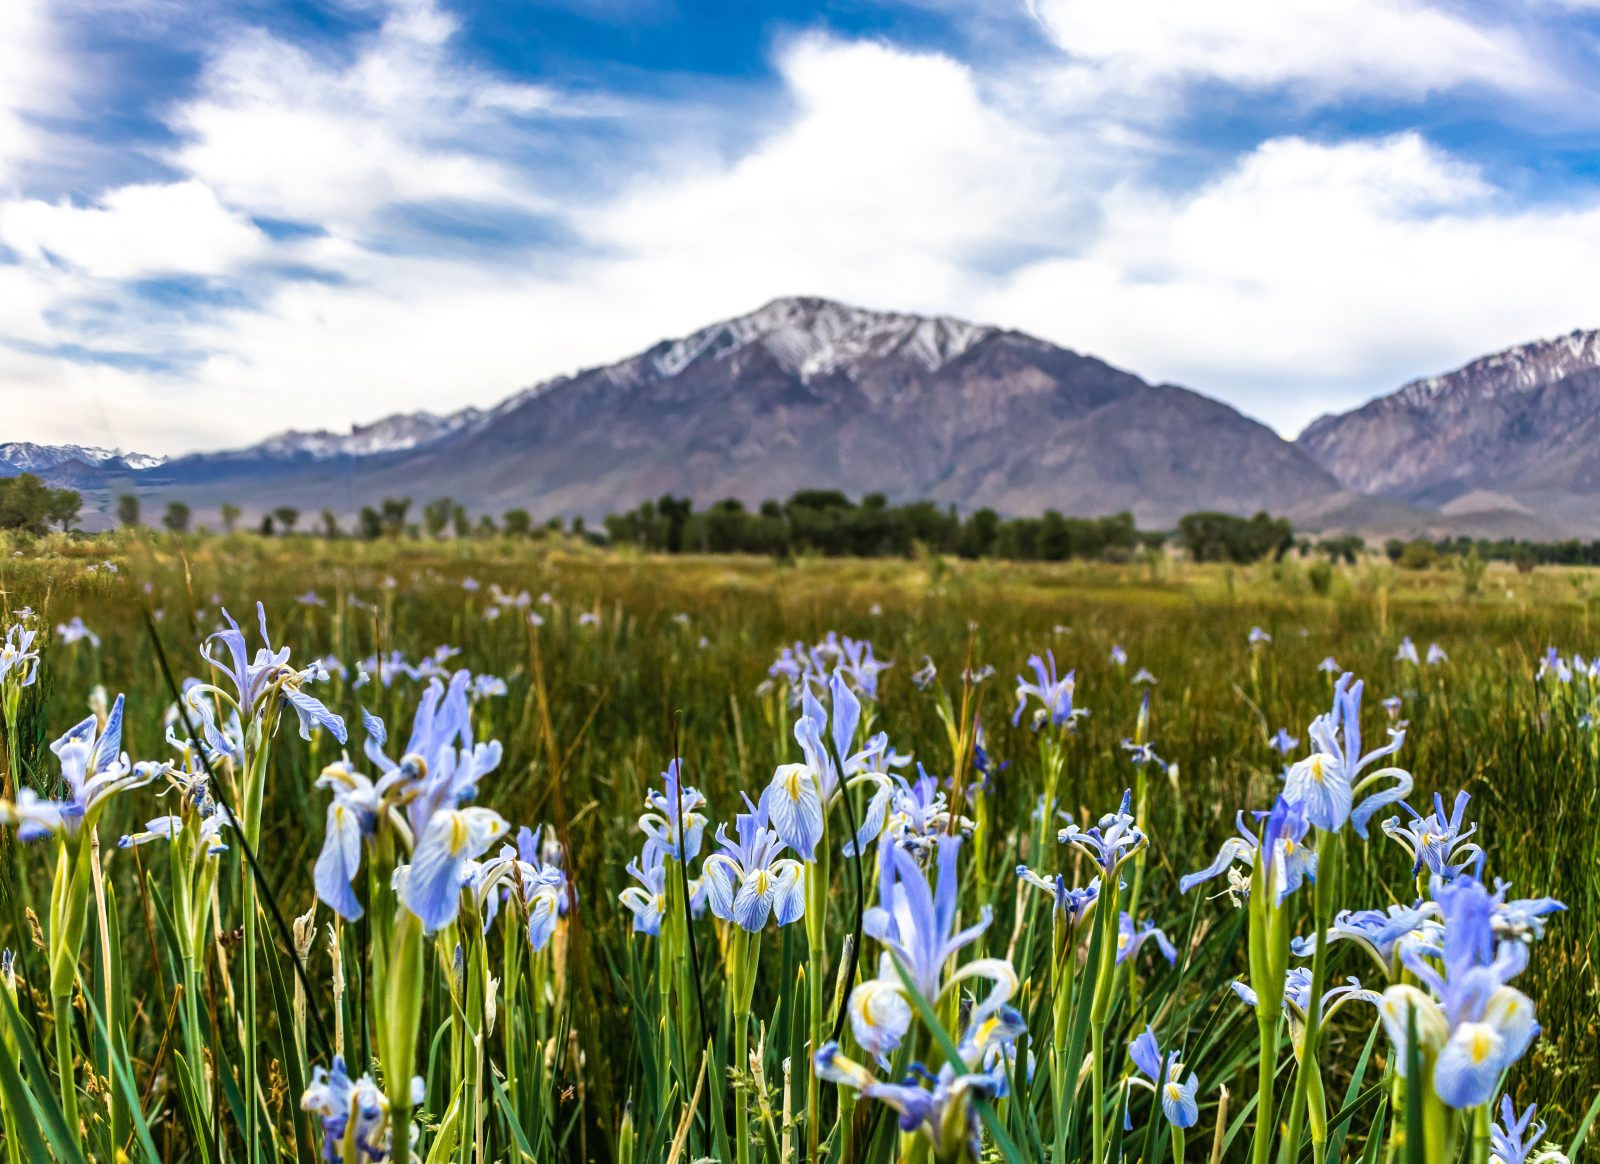 WIld Iris & The Sierra Nevada